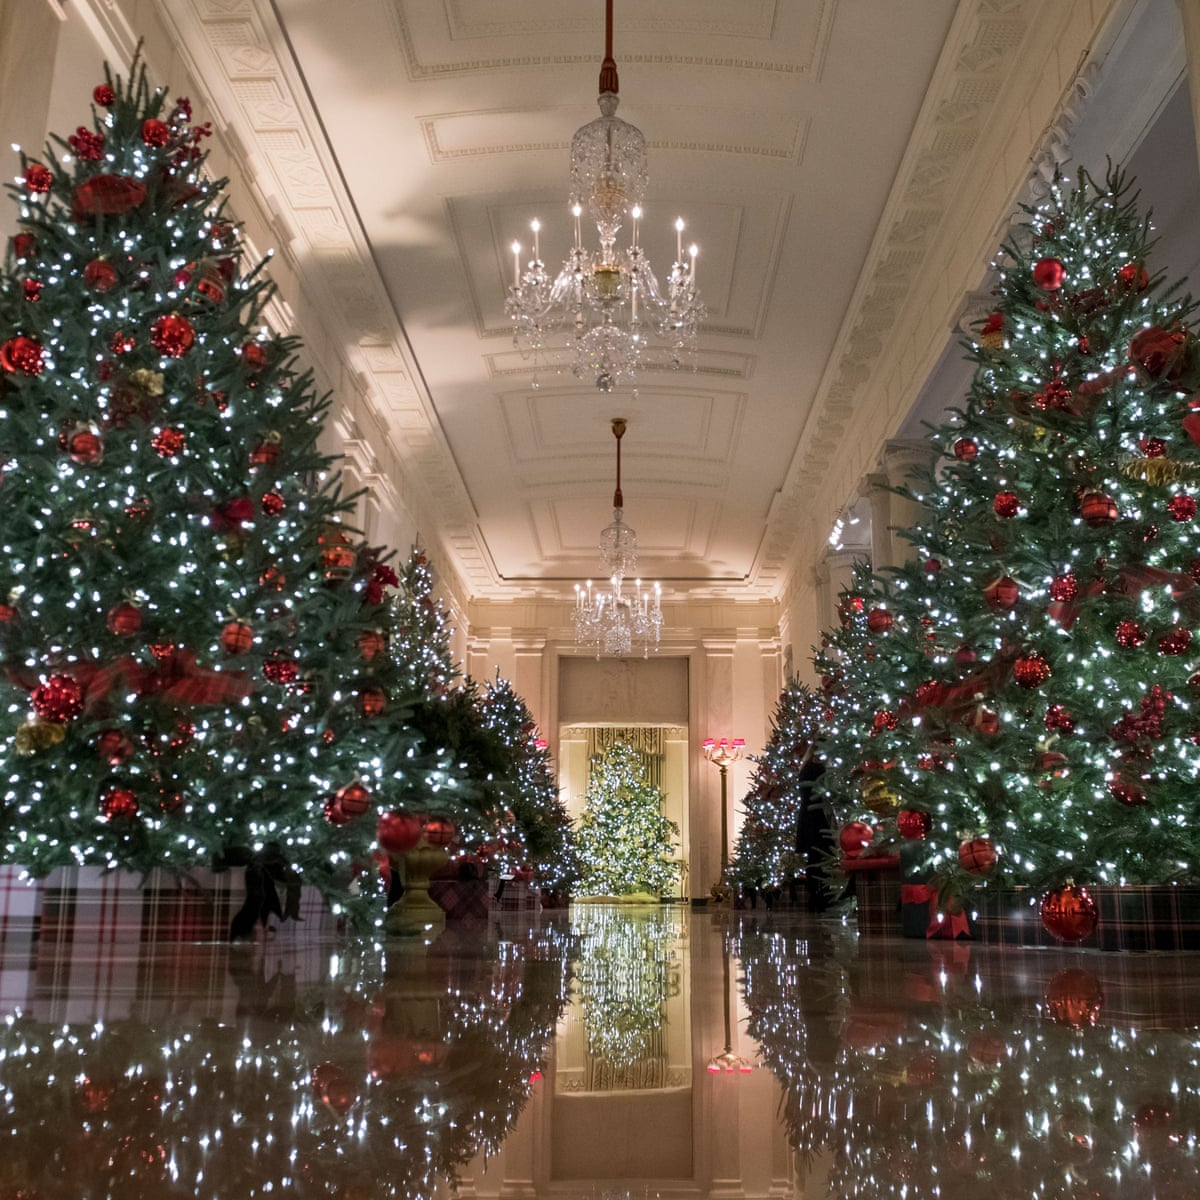 Melania Trump Swaps Horror For Tradition With Lighter Approach To Christmas Decor Melania Trump The Guardian